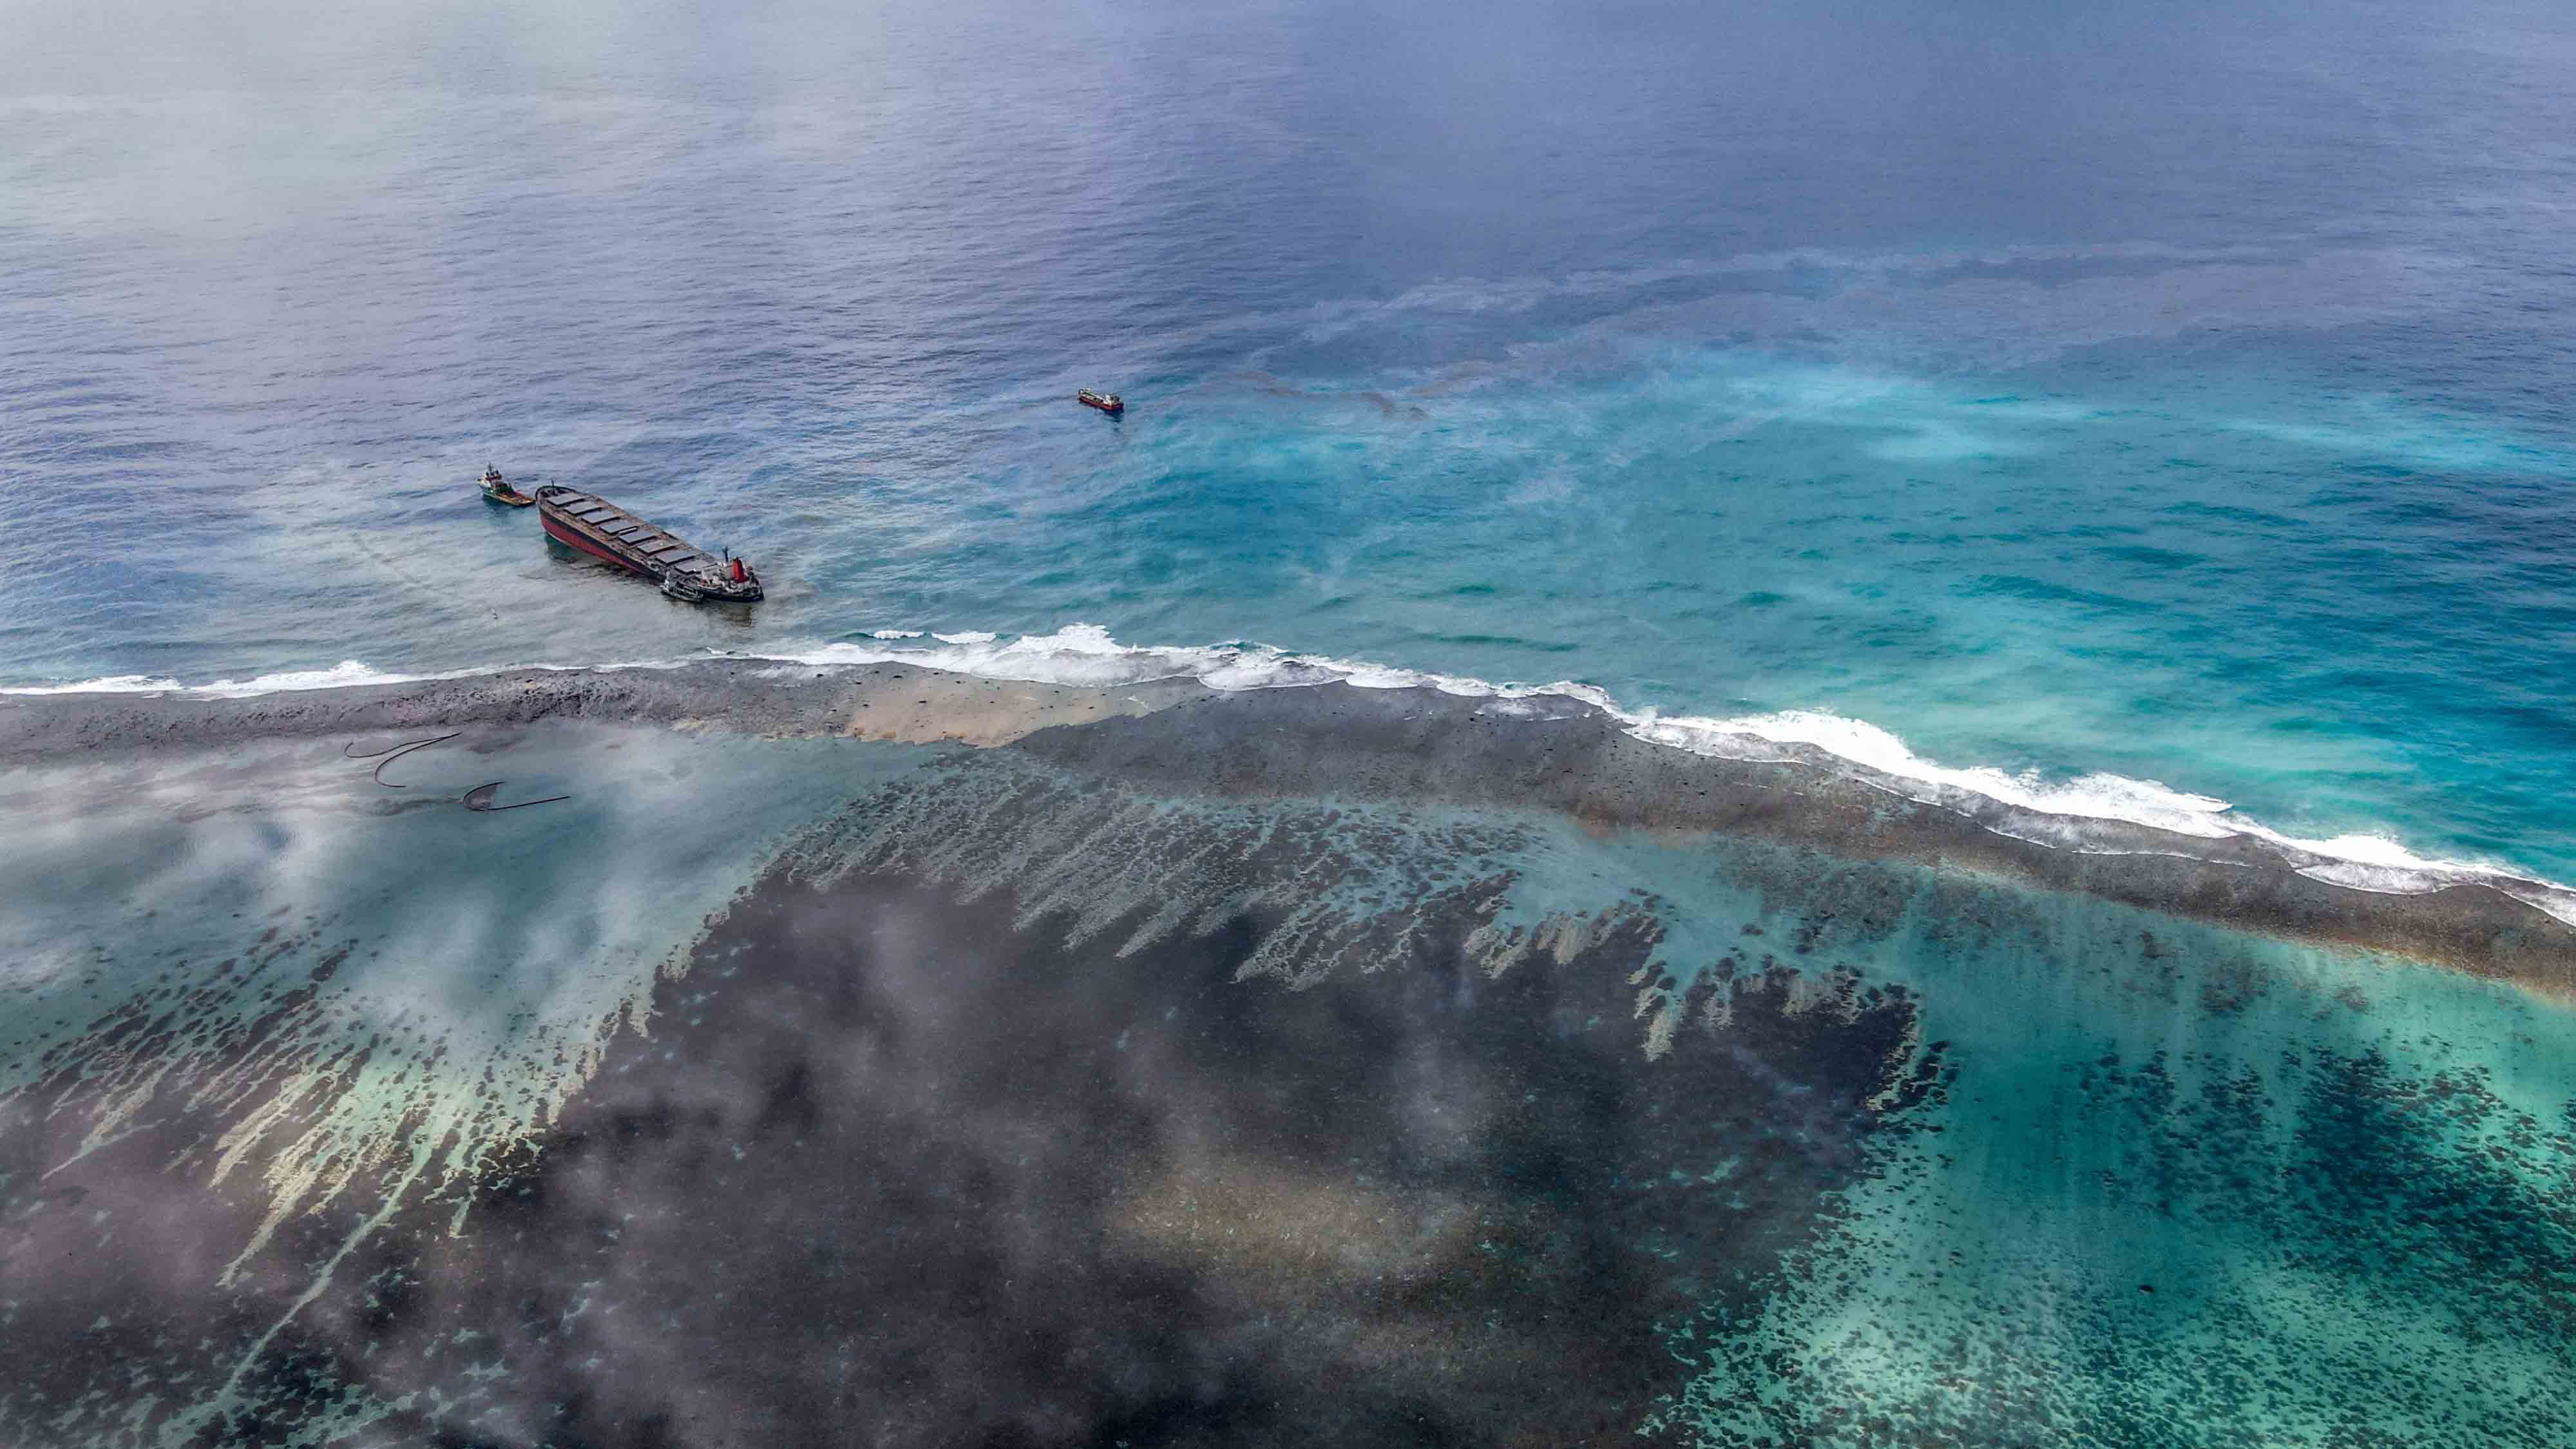 Crews Race to Contain Oil Spill off Mauritius Before Ship Falls Apart